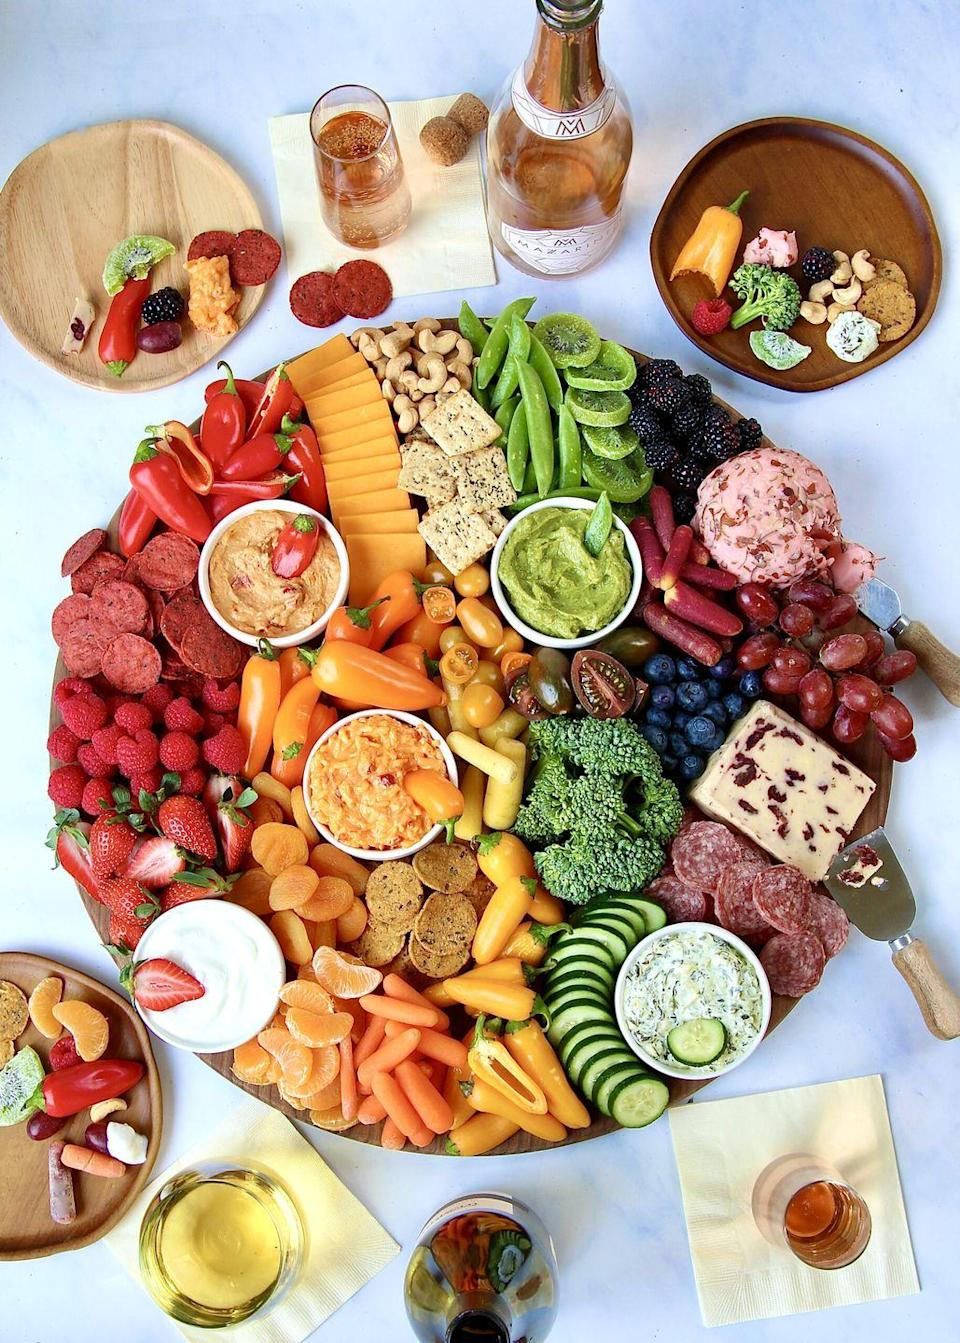 """<p>Every nibble you could possibly crave is found on this rainbow snack board. Sweet, savory, salty—you name it!</p><p><strong>Get the recipe at <a href=""""https://thebakermama.com/recipes/eat-the-rainbow-snack-board/"""" rel=""""nofollow noopener"""" target=""""_blank"""" data-ylk=""""slk:The Baker Mama"""" class=""""link rapid-noclick-resp"""">The Baker Mama</a>.</strong></p><p><strong><a class=""""link rapid-noclick-resp"""" href=""""https://go.redirectingat.com?id=74968X1596630&url=https%3A%2F%2Fwww.walmart.com%2Fsearch%2F%3Fquery%3Dcheese%2Bboards&sref=https%3A%2F%2Fwww.thepioneerwoman.com%2Ffood-cooking%2Fmeals-menus%2Fg36421919%2Frainbow-recipes%2F"""" rel=""""nofollow noopener"""" target=""""_blank"""" data-ylk=""""slk:SHOP CHEESE BOARDS"""">SHOP CHEESE BOARDS</a><br></strong></p>"""